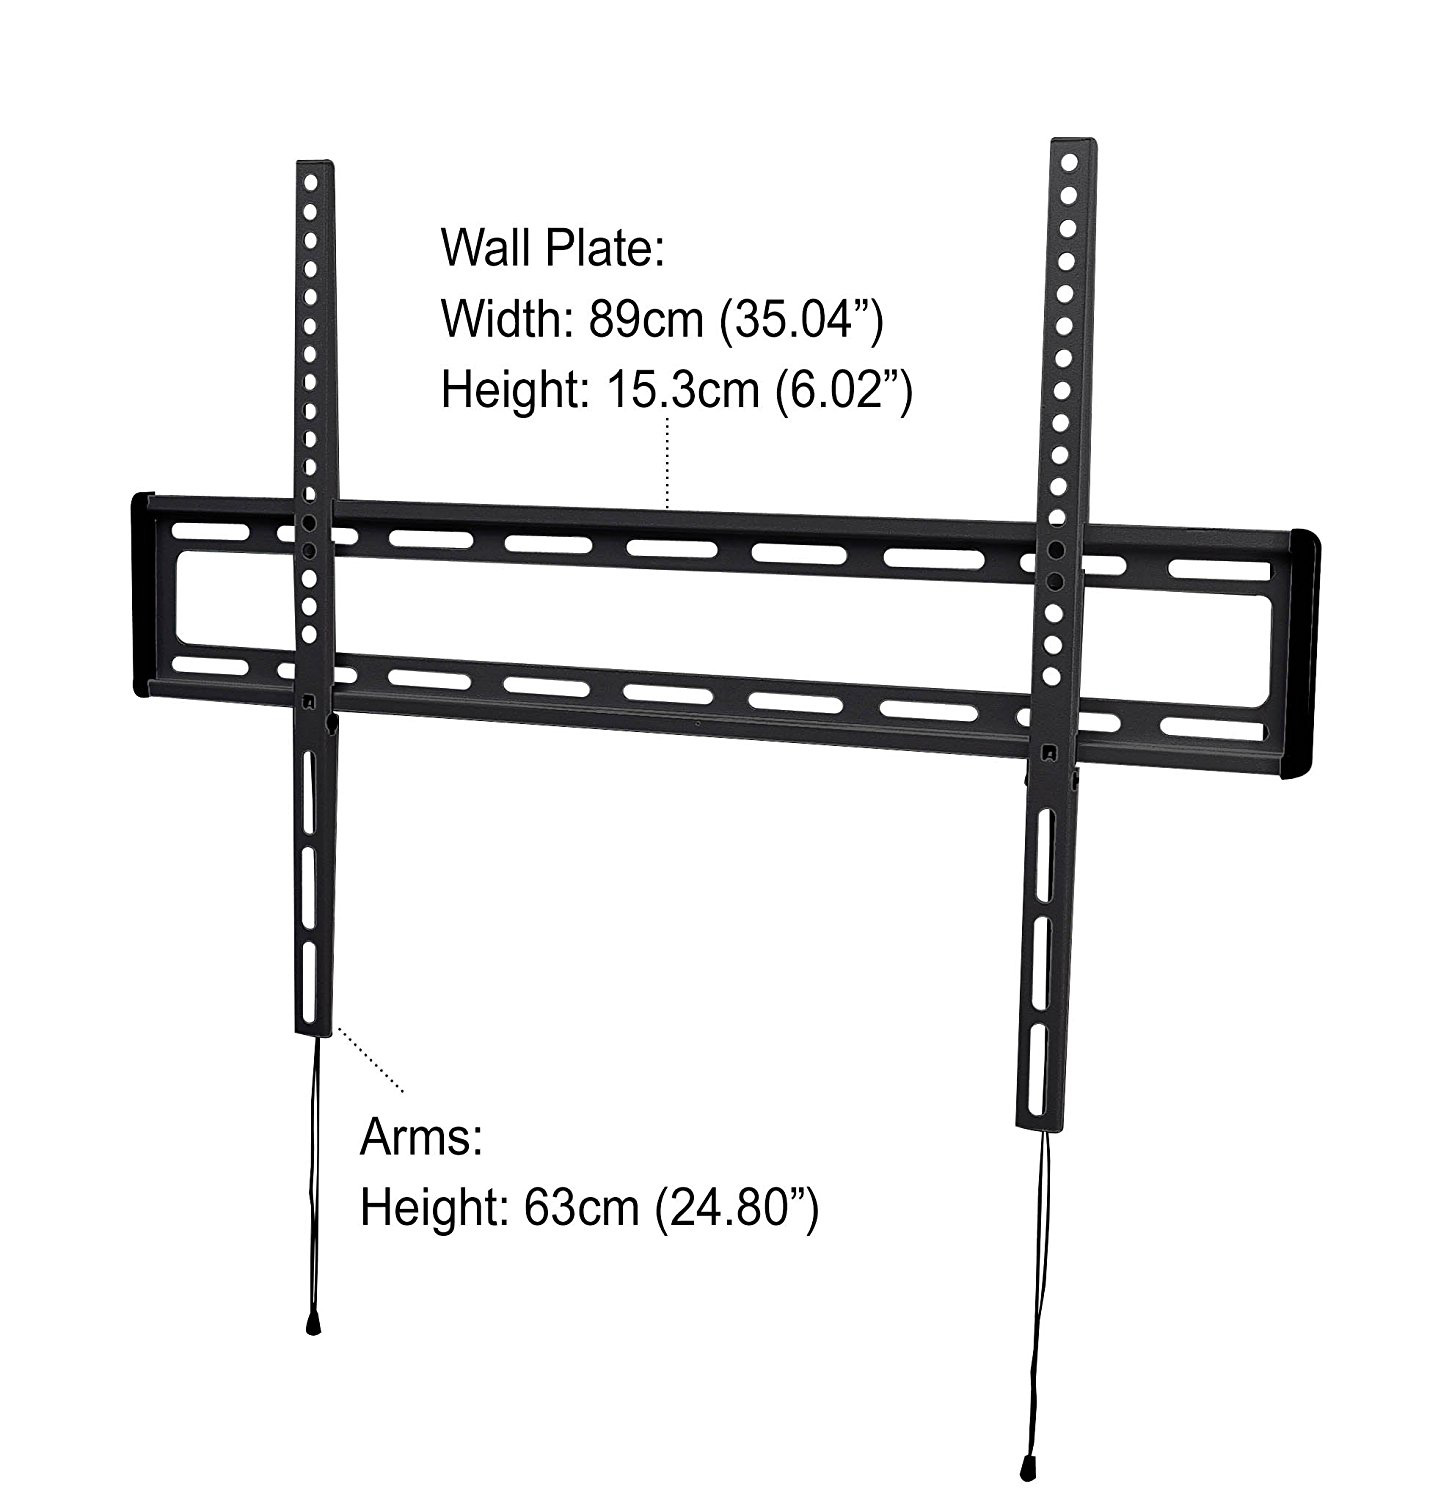 iQ Low-Profile Flat Wall Mount for 47